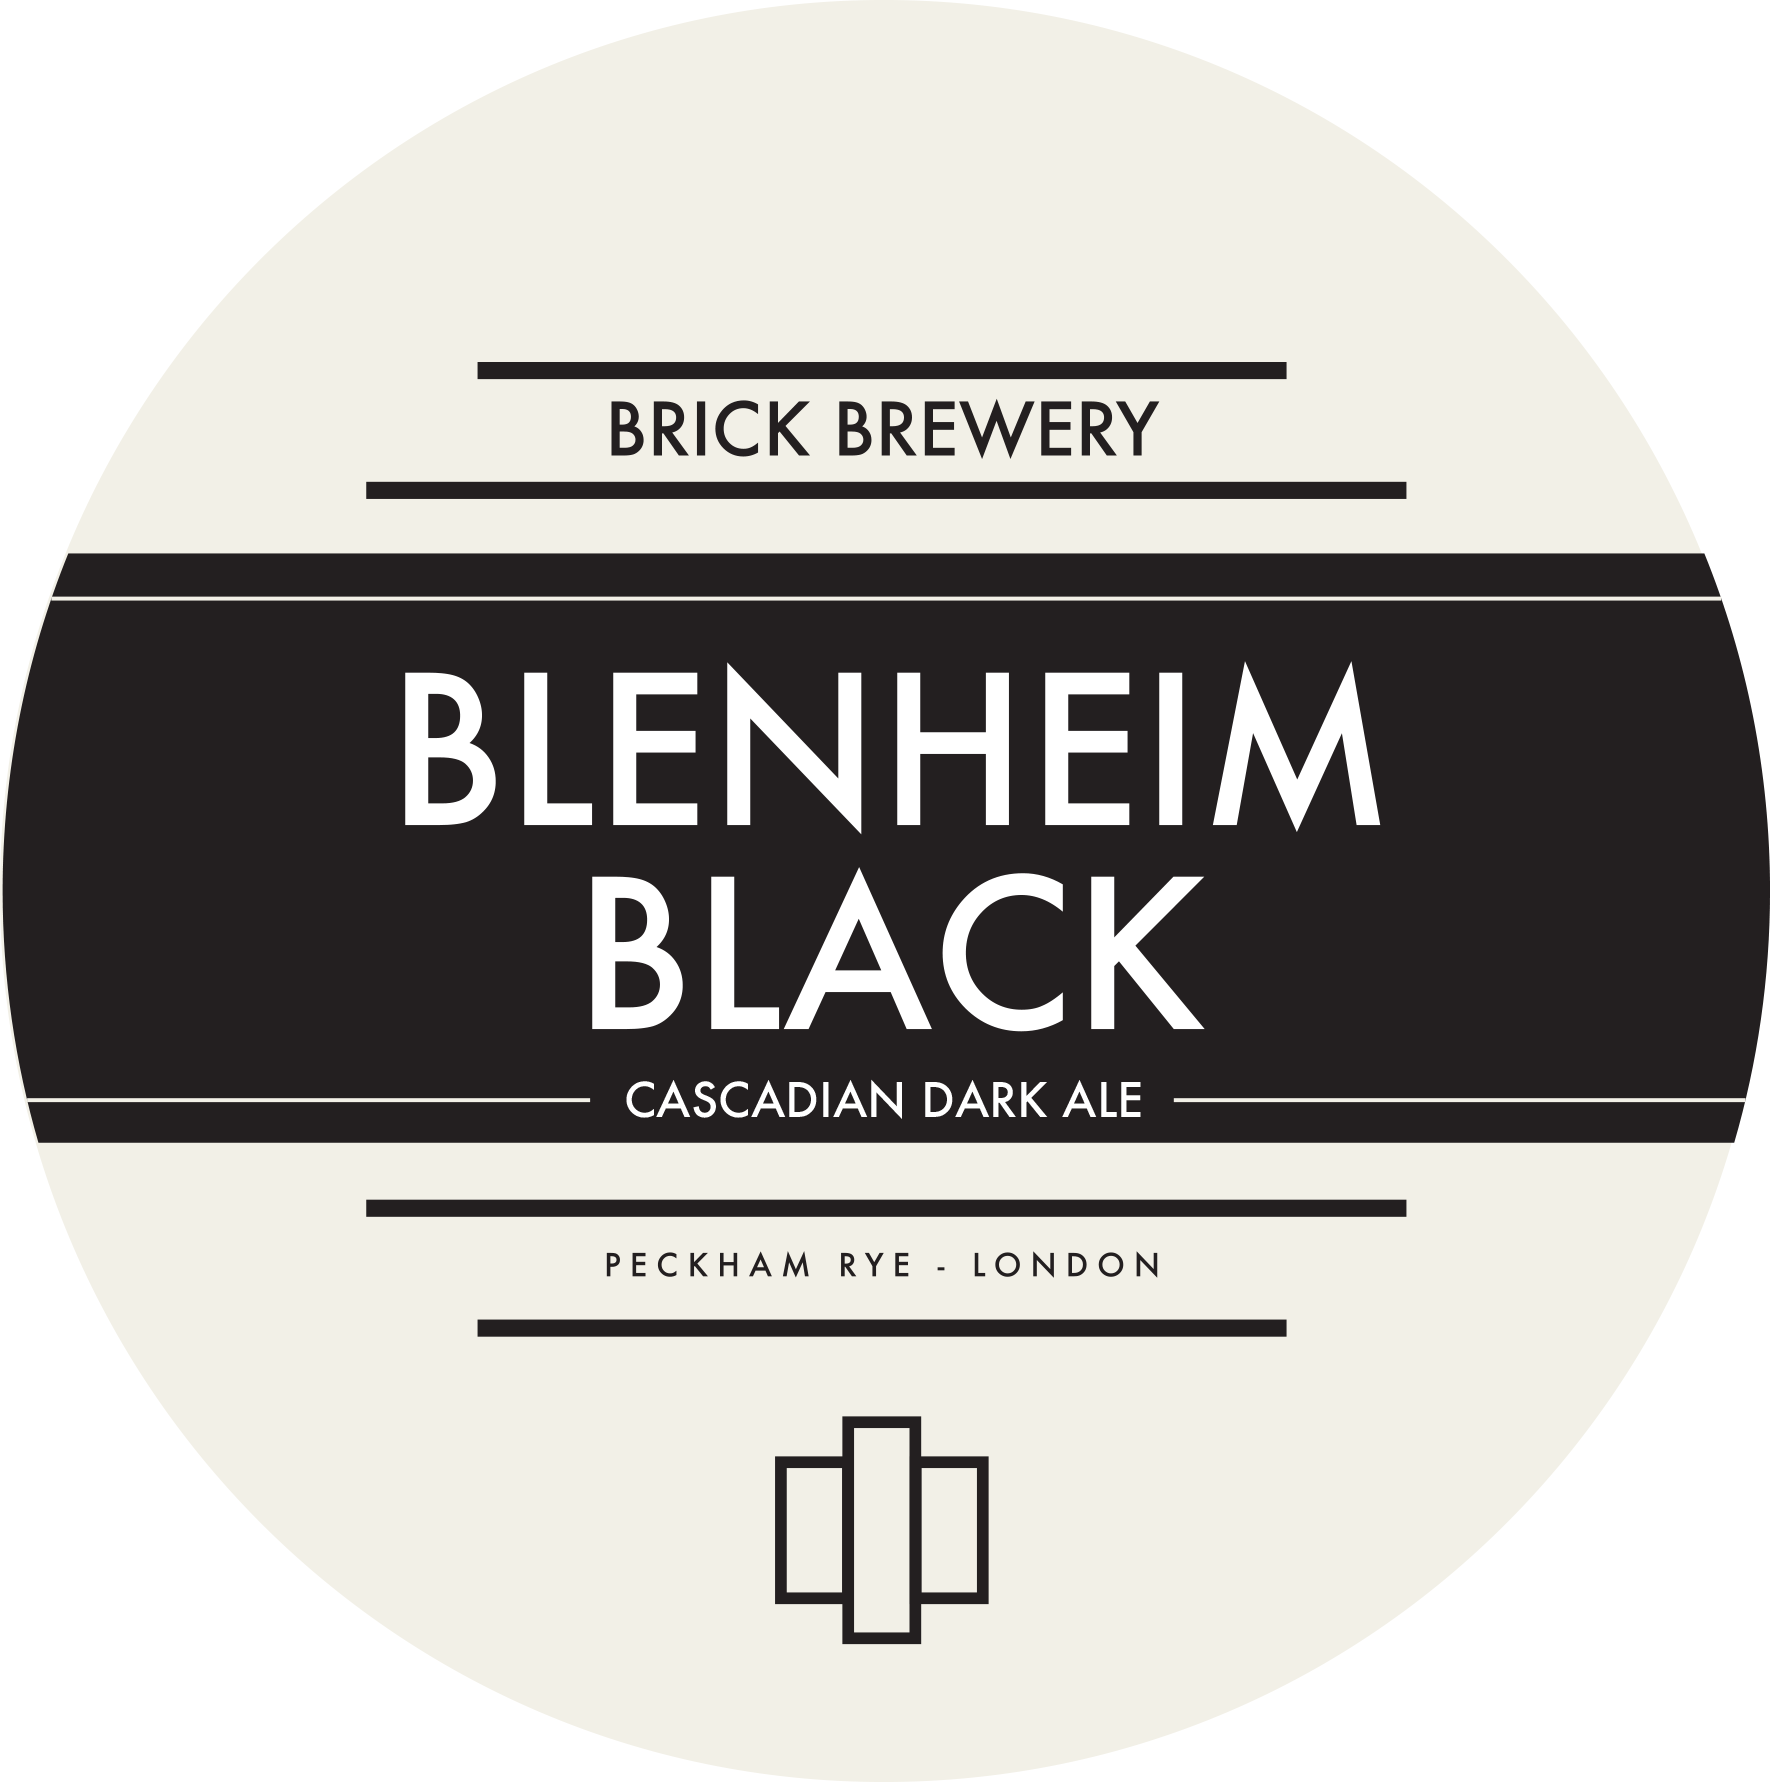 Brick Brewery's Blenheim Black Beer Logo